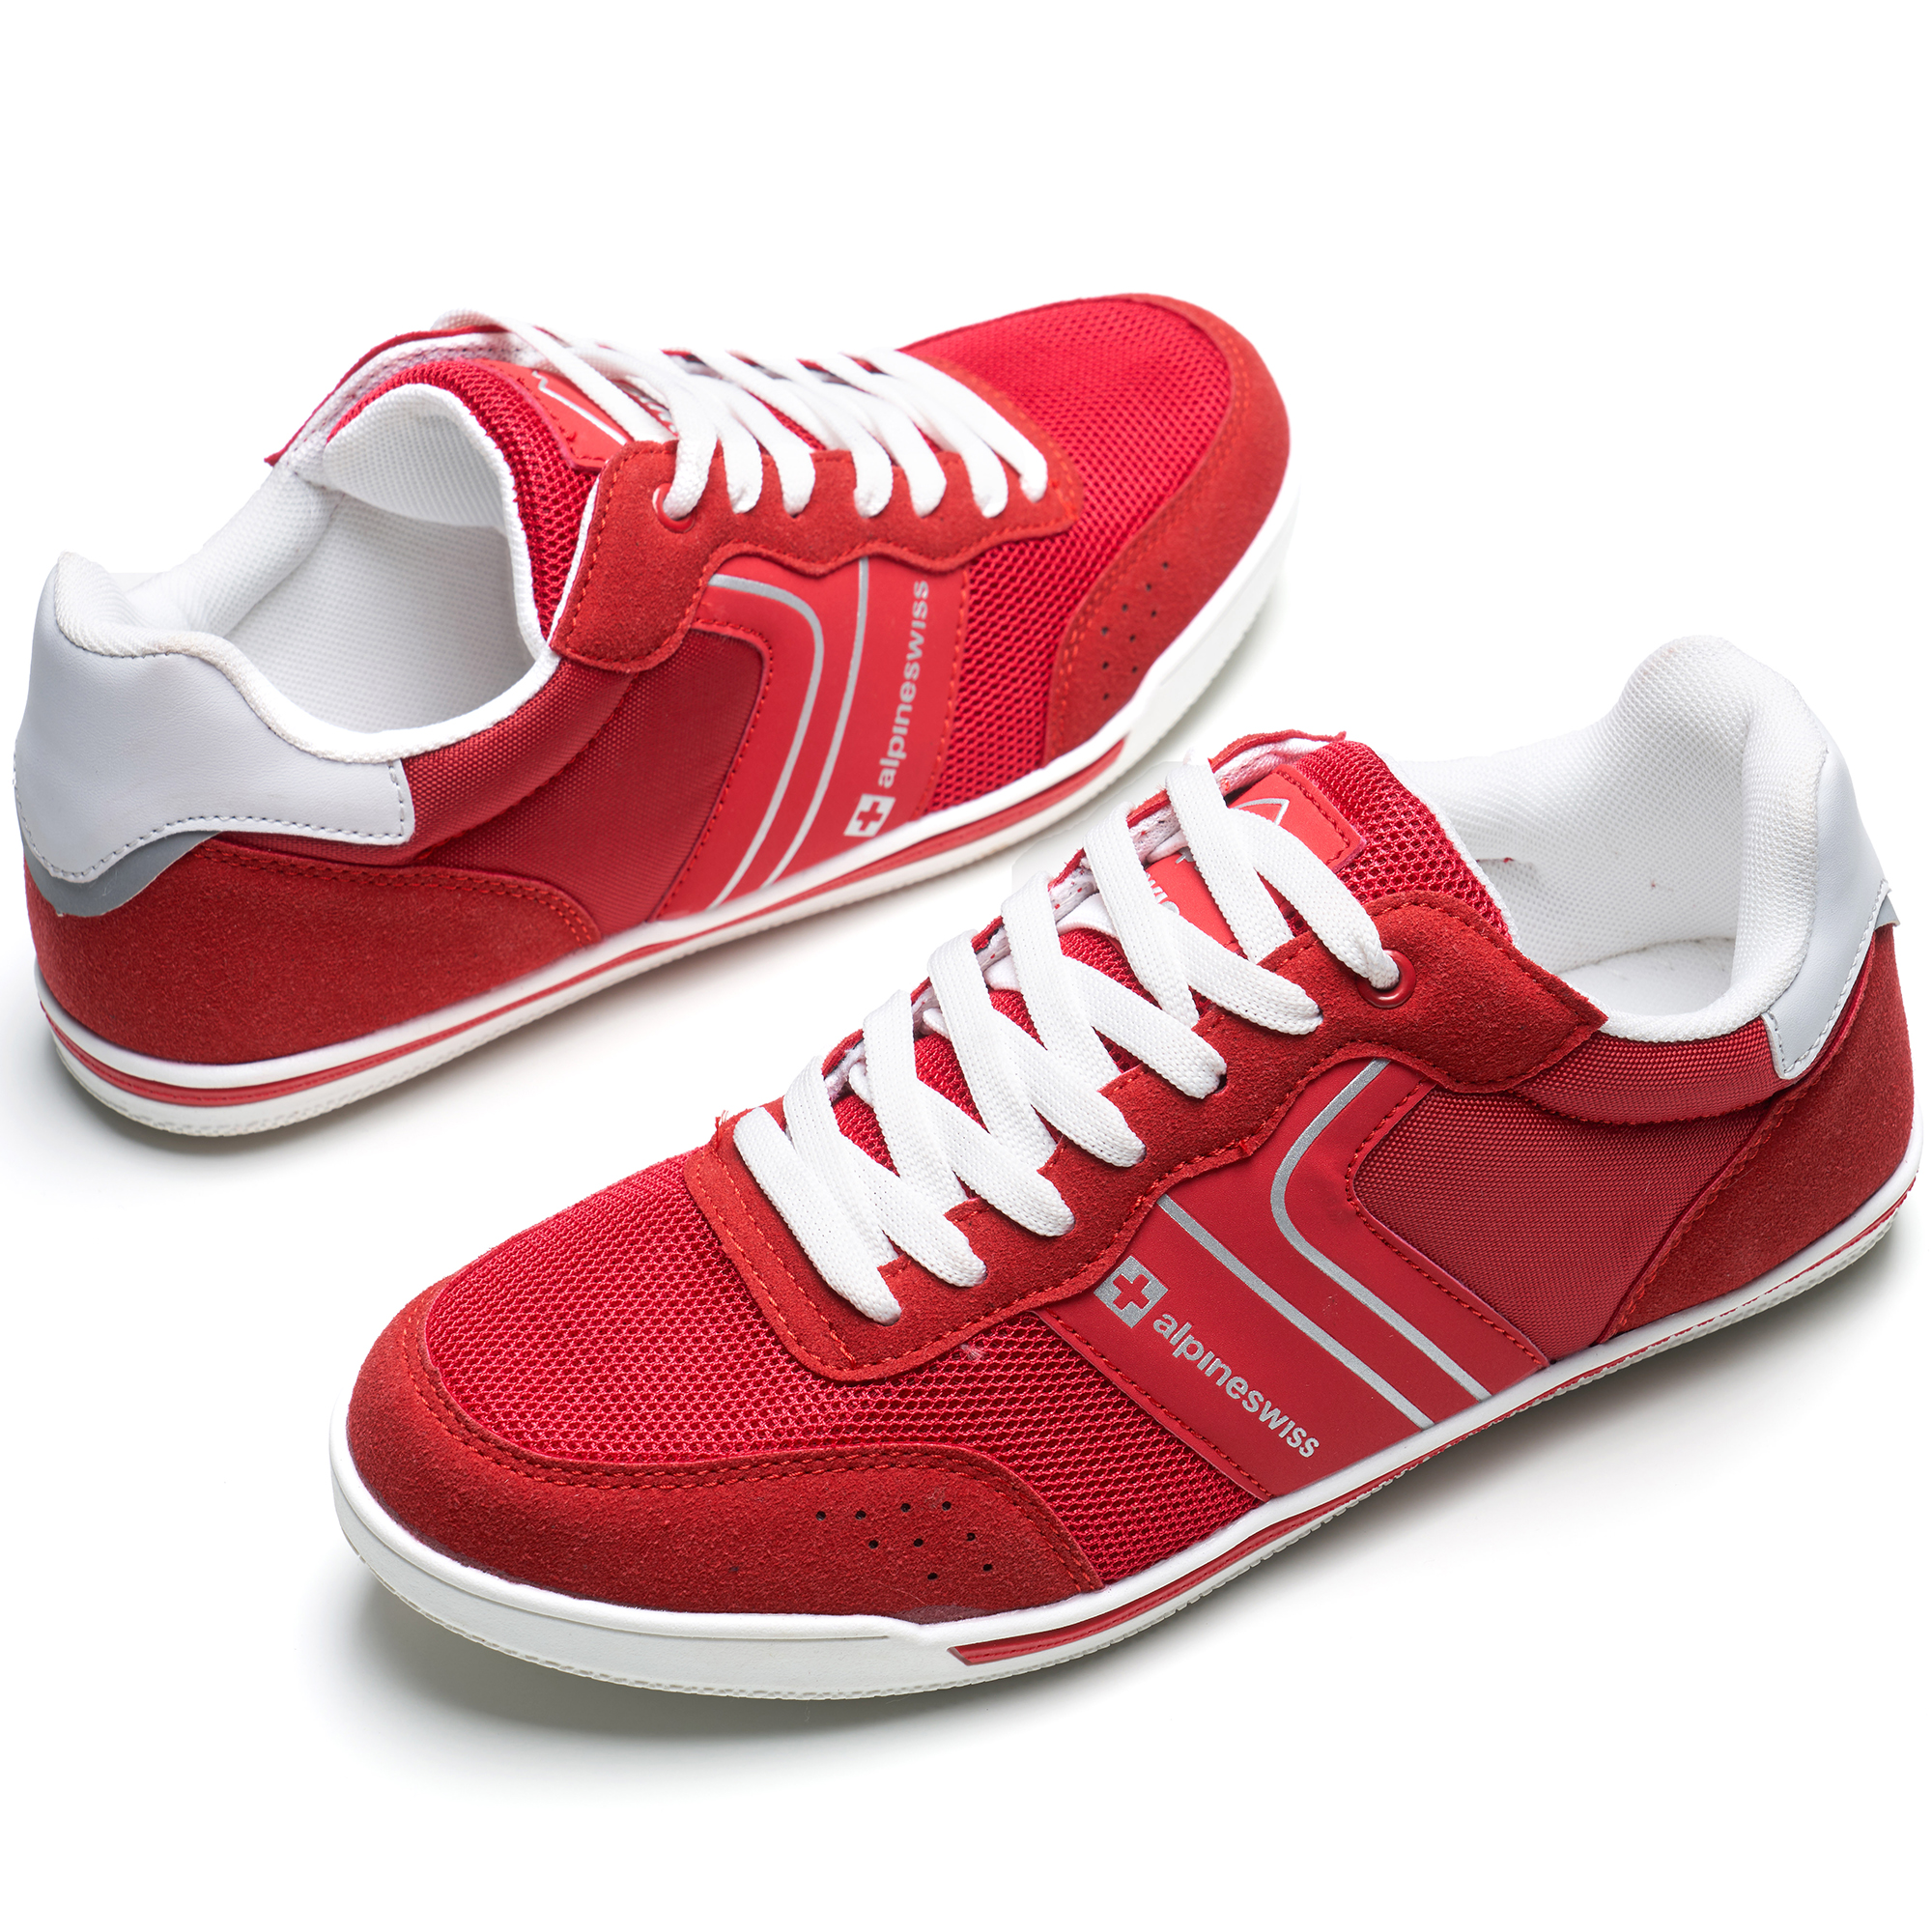 Alpine-Swiss-Liam-Mens-Fashion-Sneakers-Suede-Trim-Low-Top-Lace-Up-Tennis-Shoes thumbnail 51